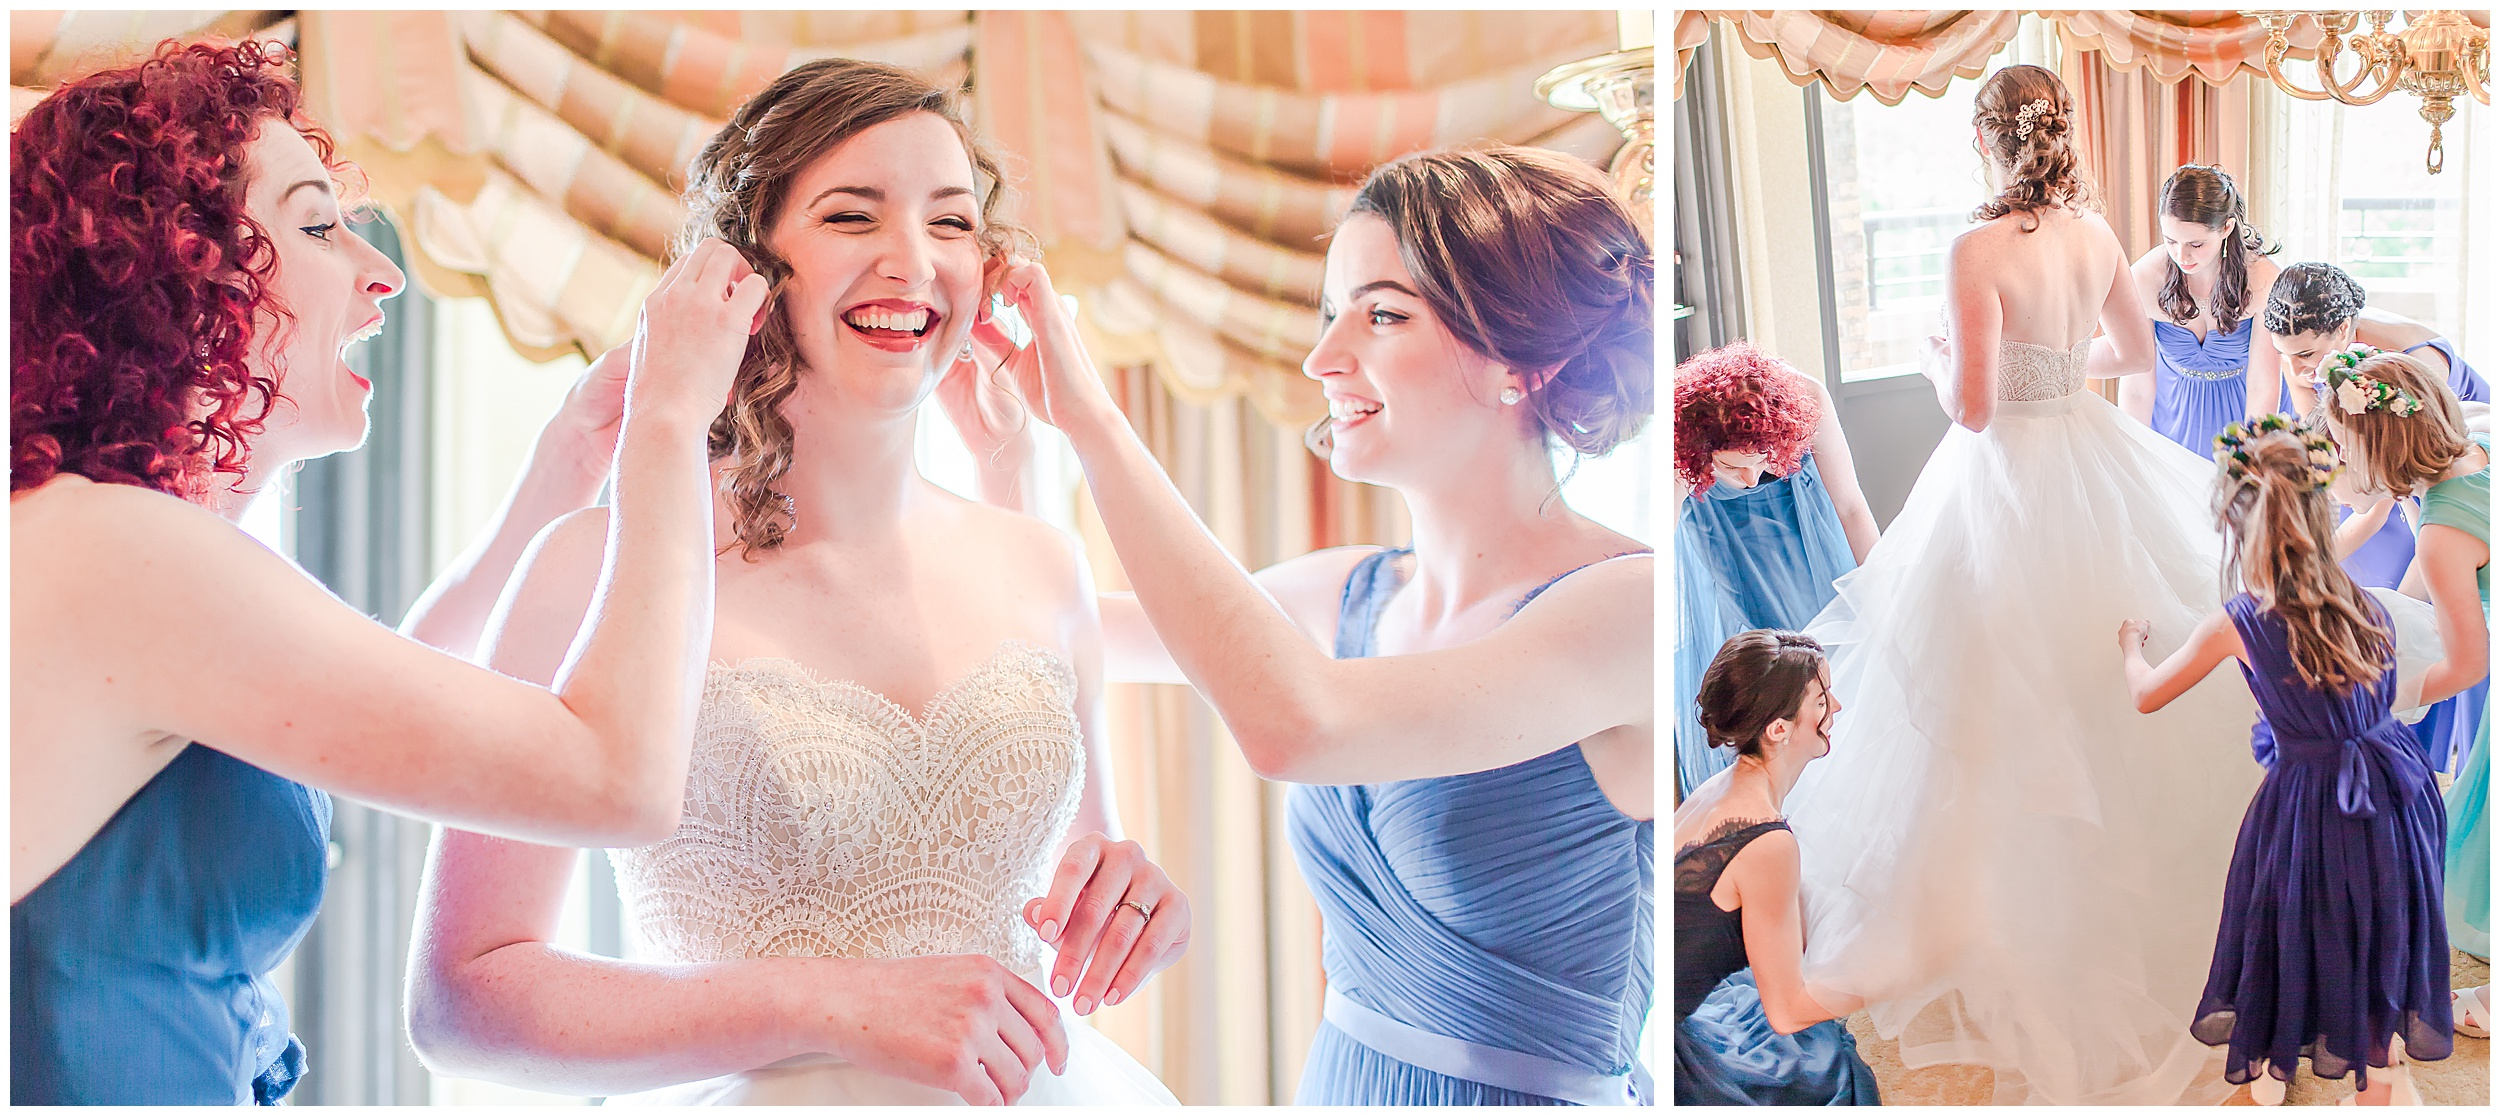 bride-sisters-getting-ready-bridesmaids